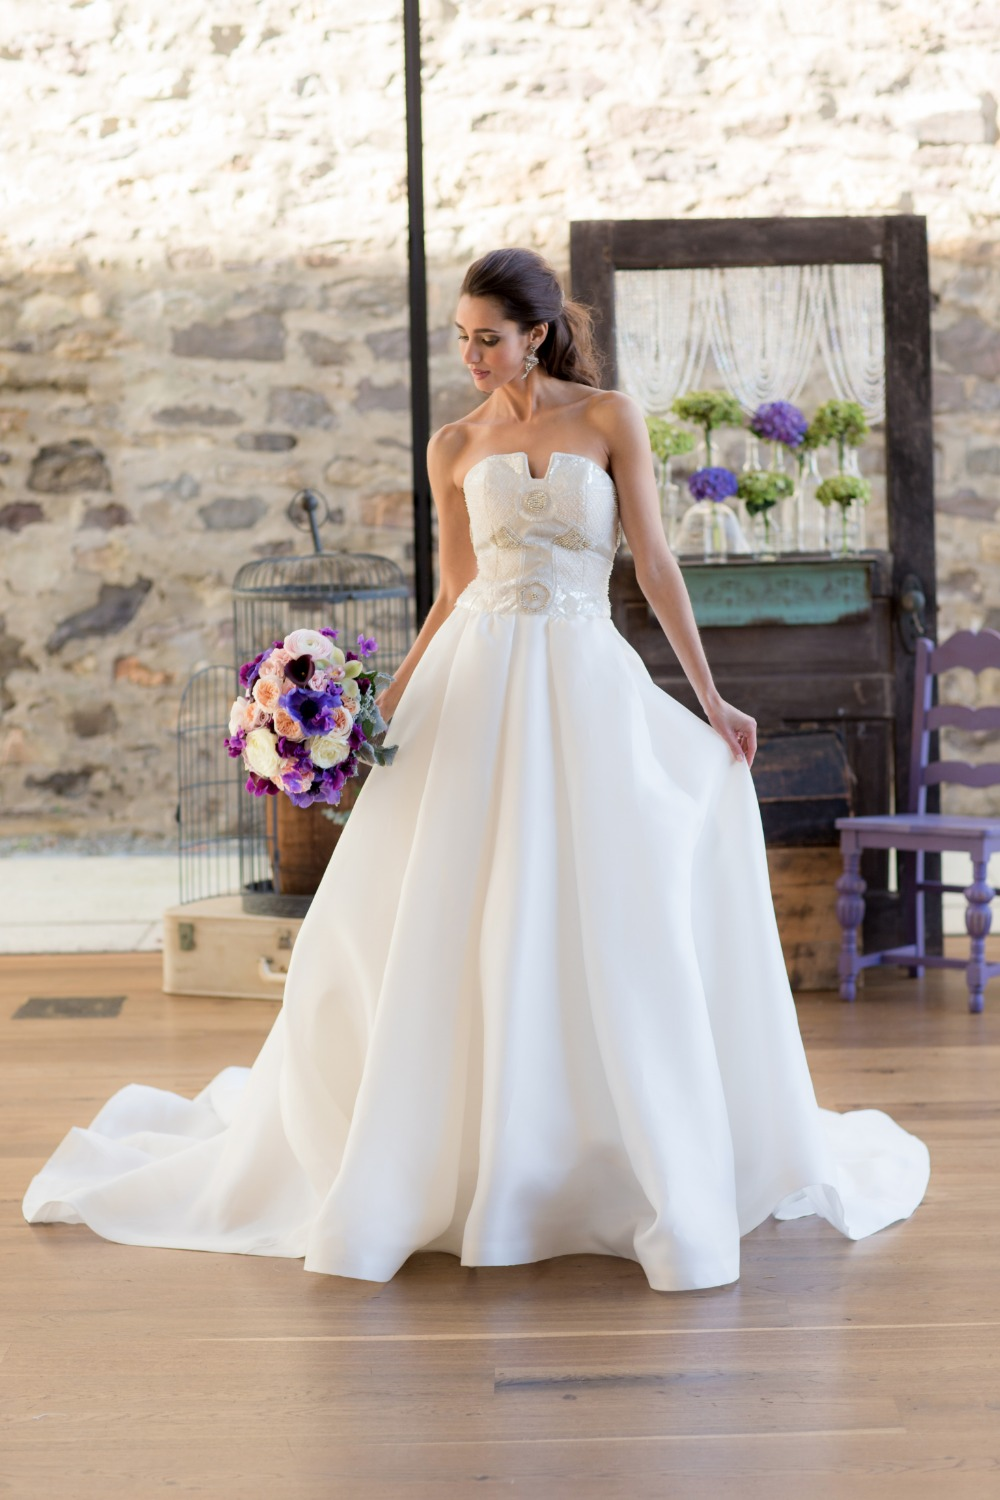 Sequin top wedding dress